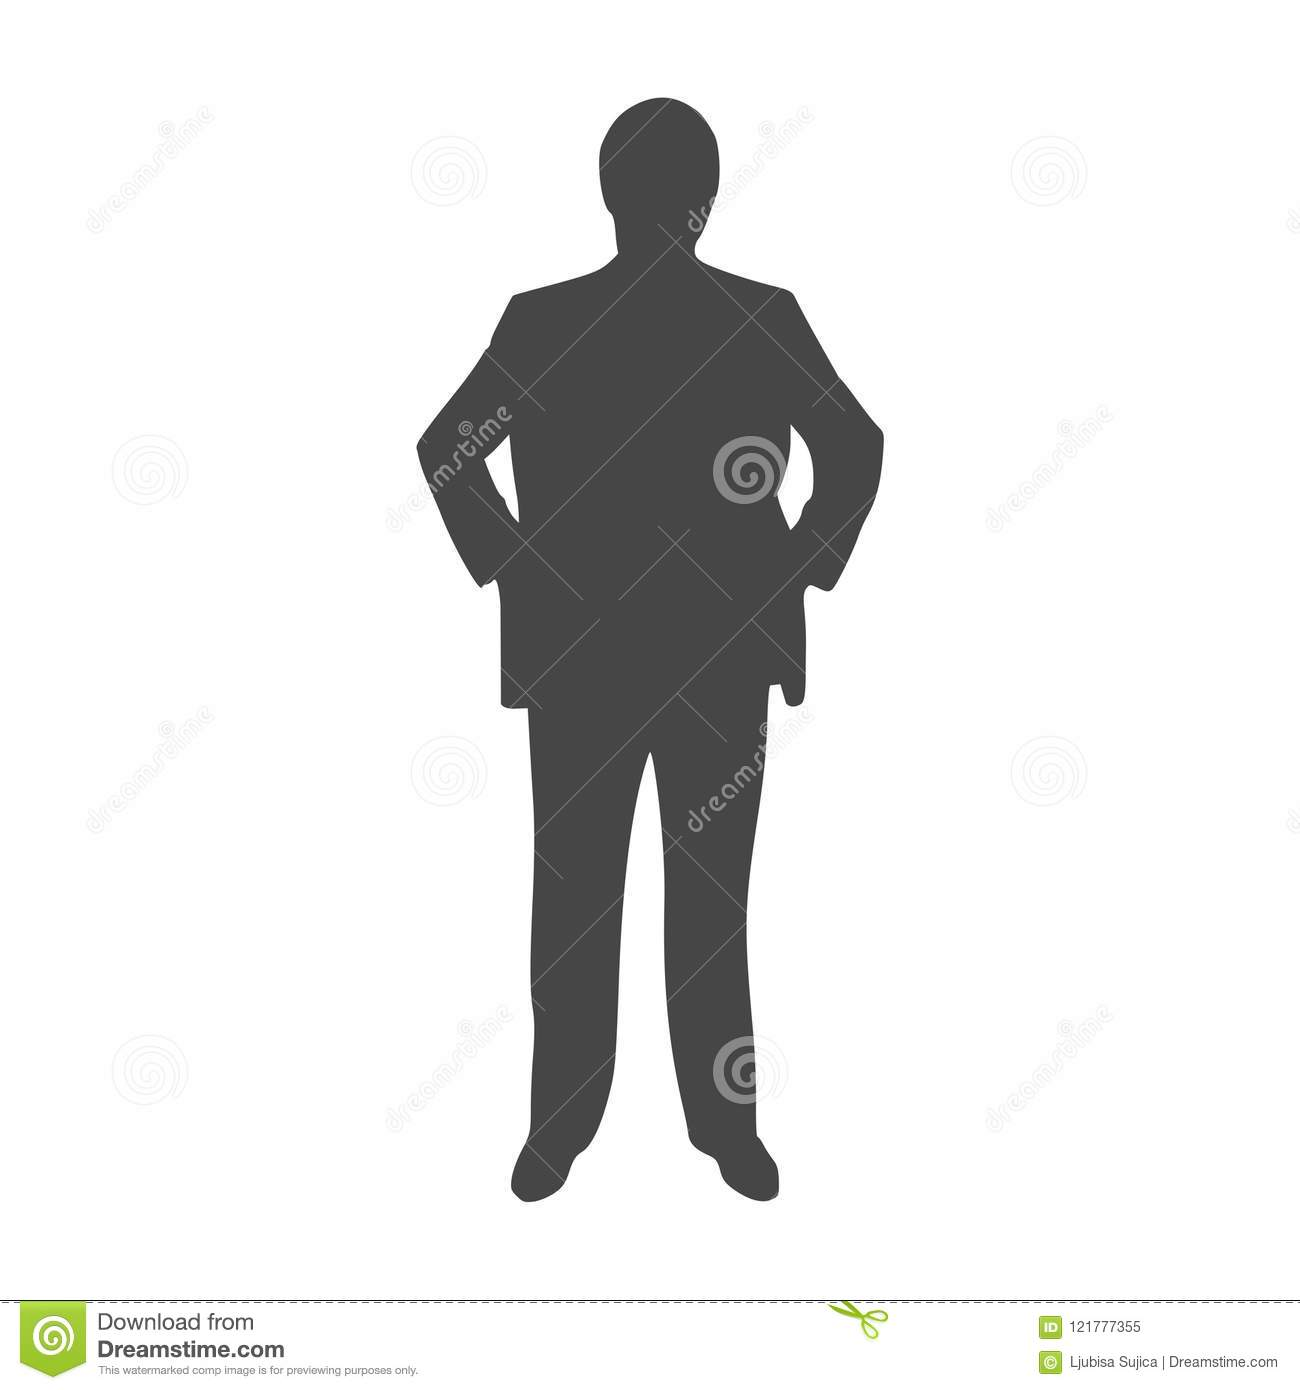 businessman silhouette icon black and white icon stock vector